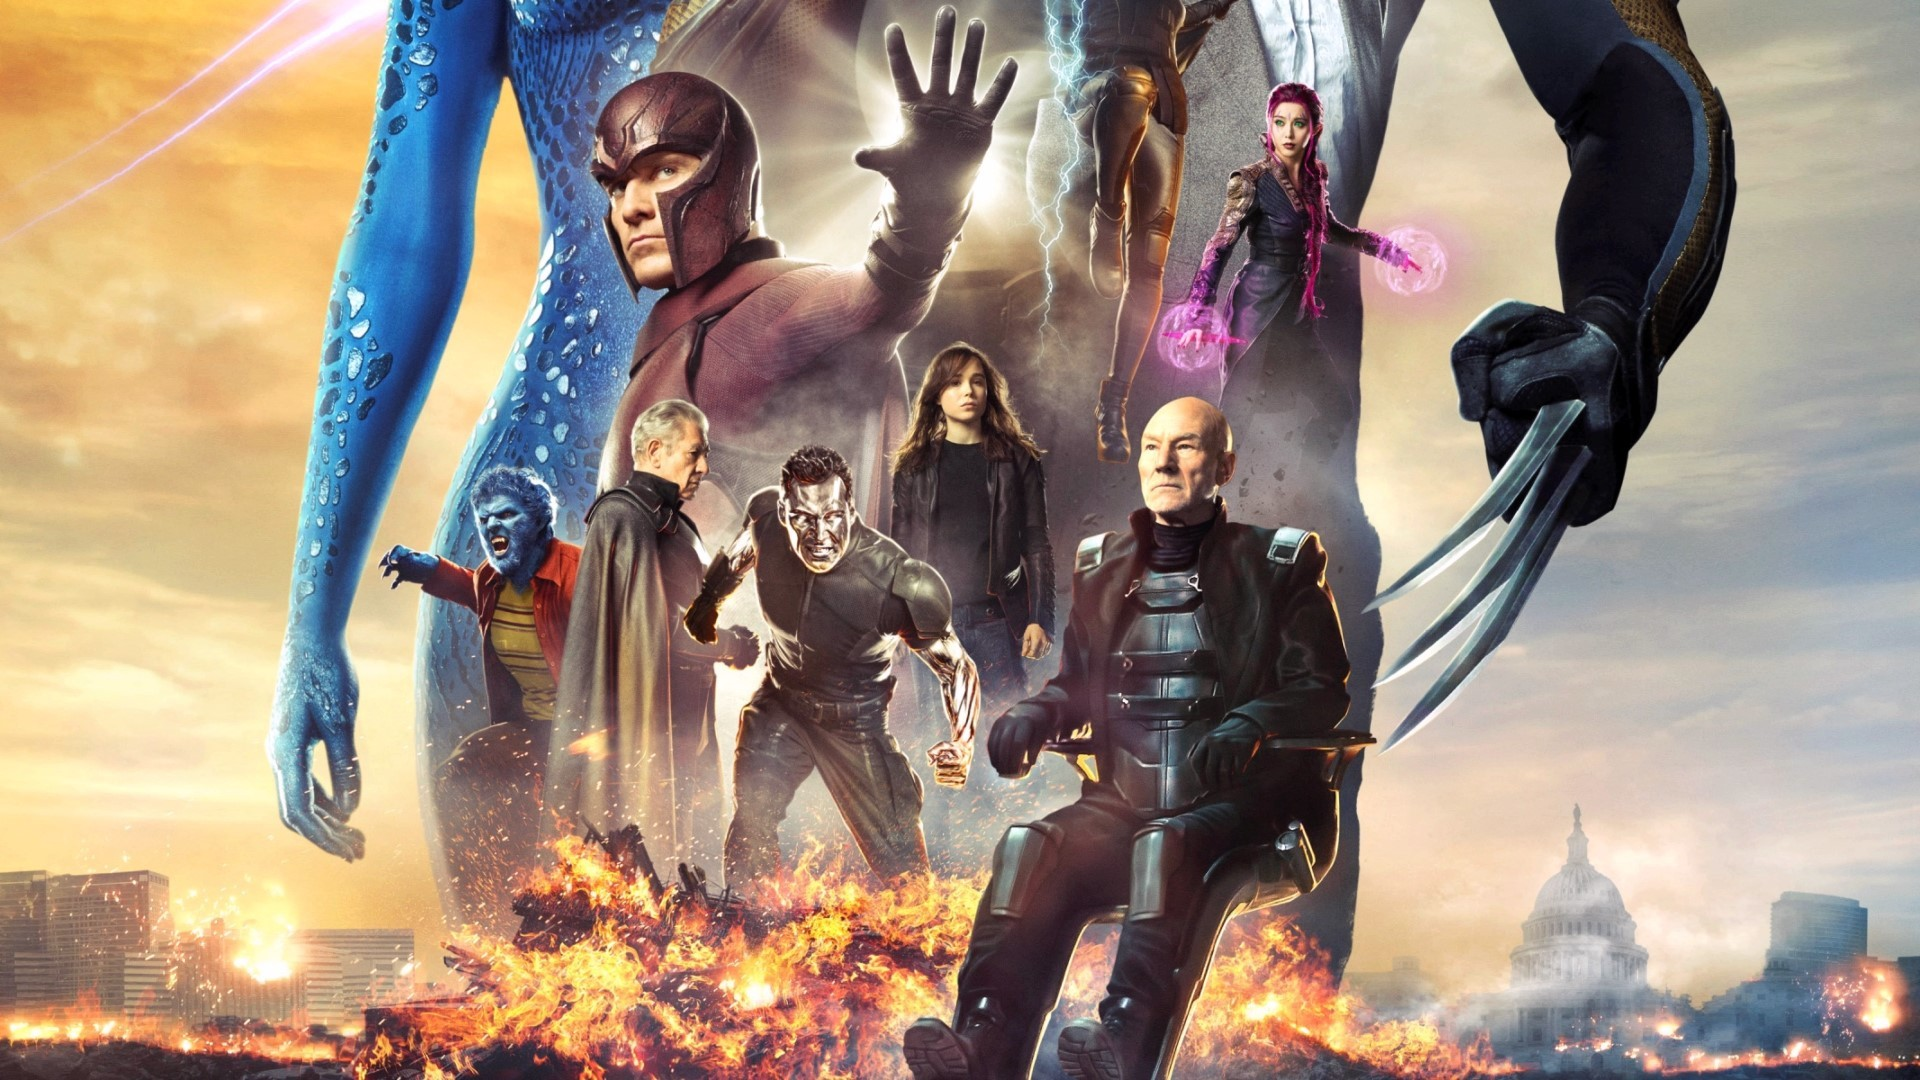 1920x1080 New X-Men Days of Future Past Movie | Men Days Of Future Past Movie